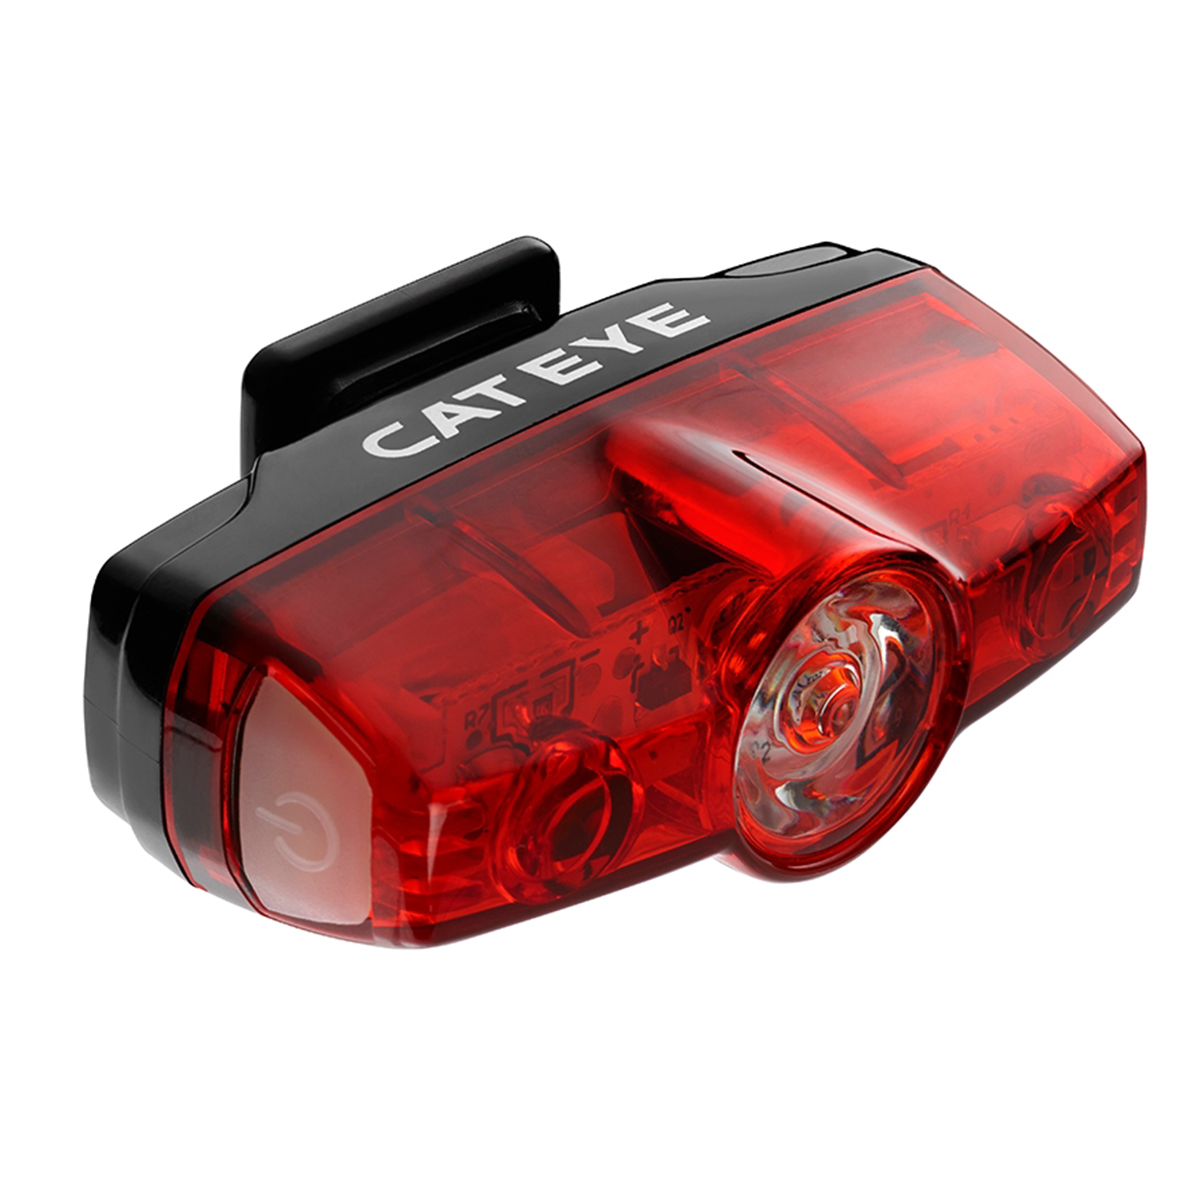 Cateye Rapid Mini Rechargeable Rear Light